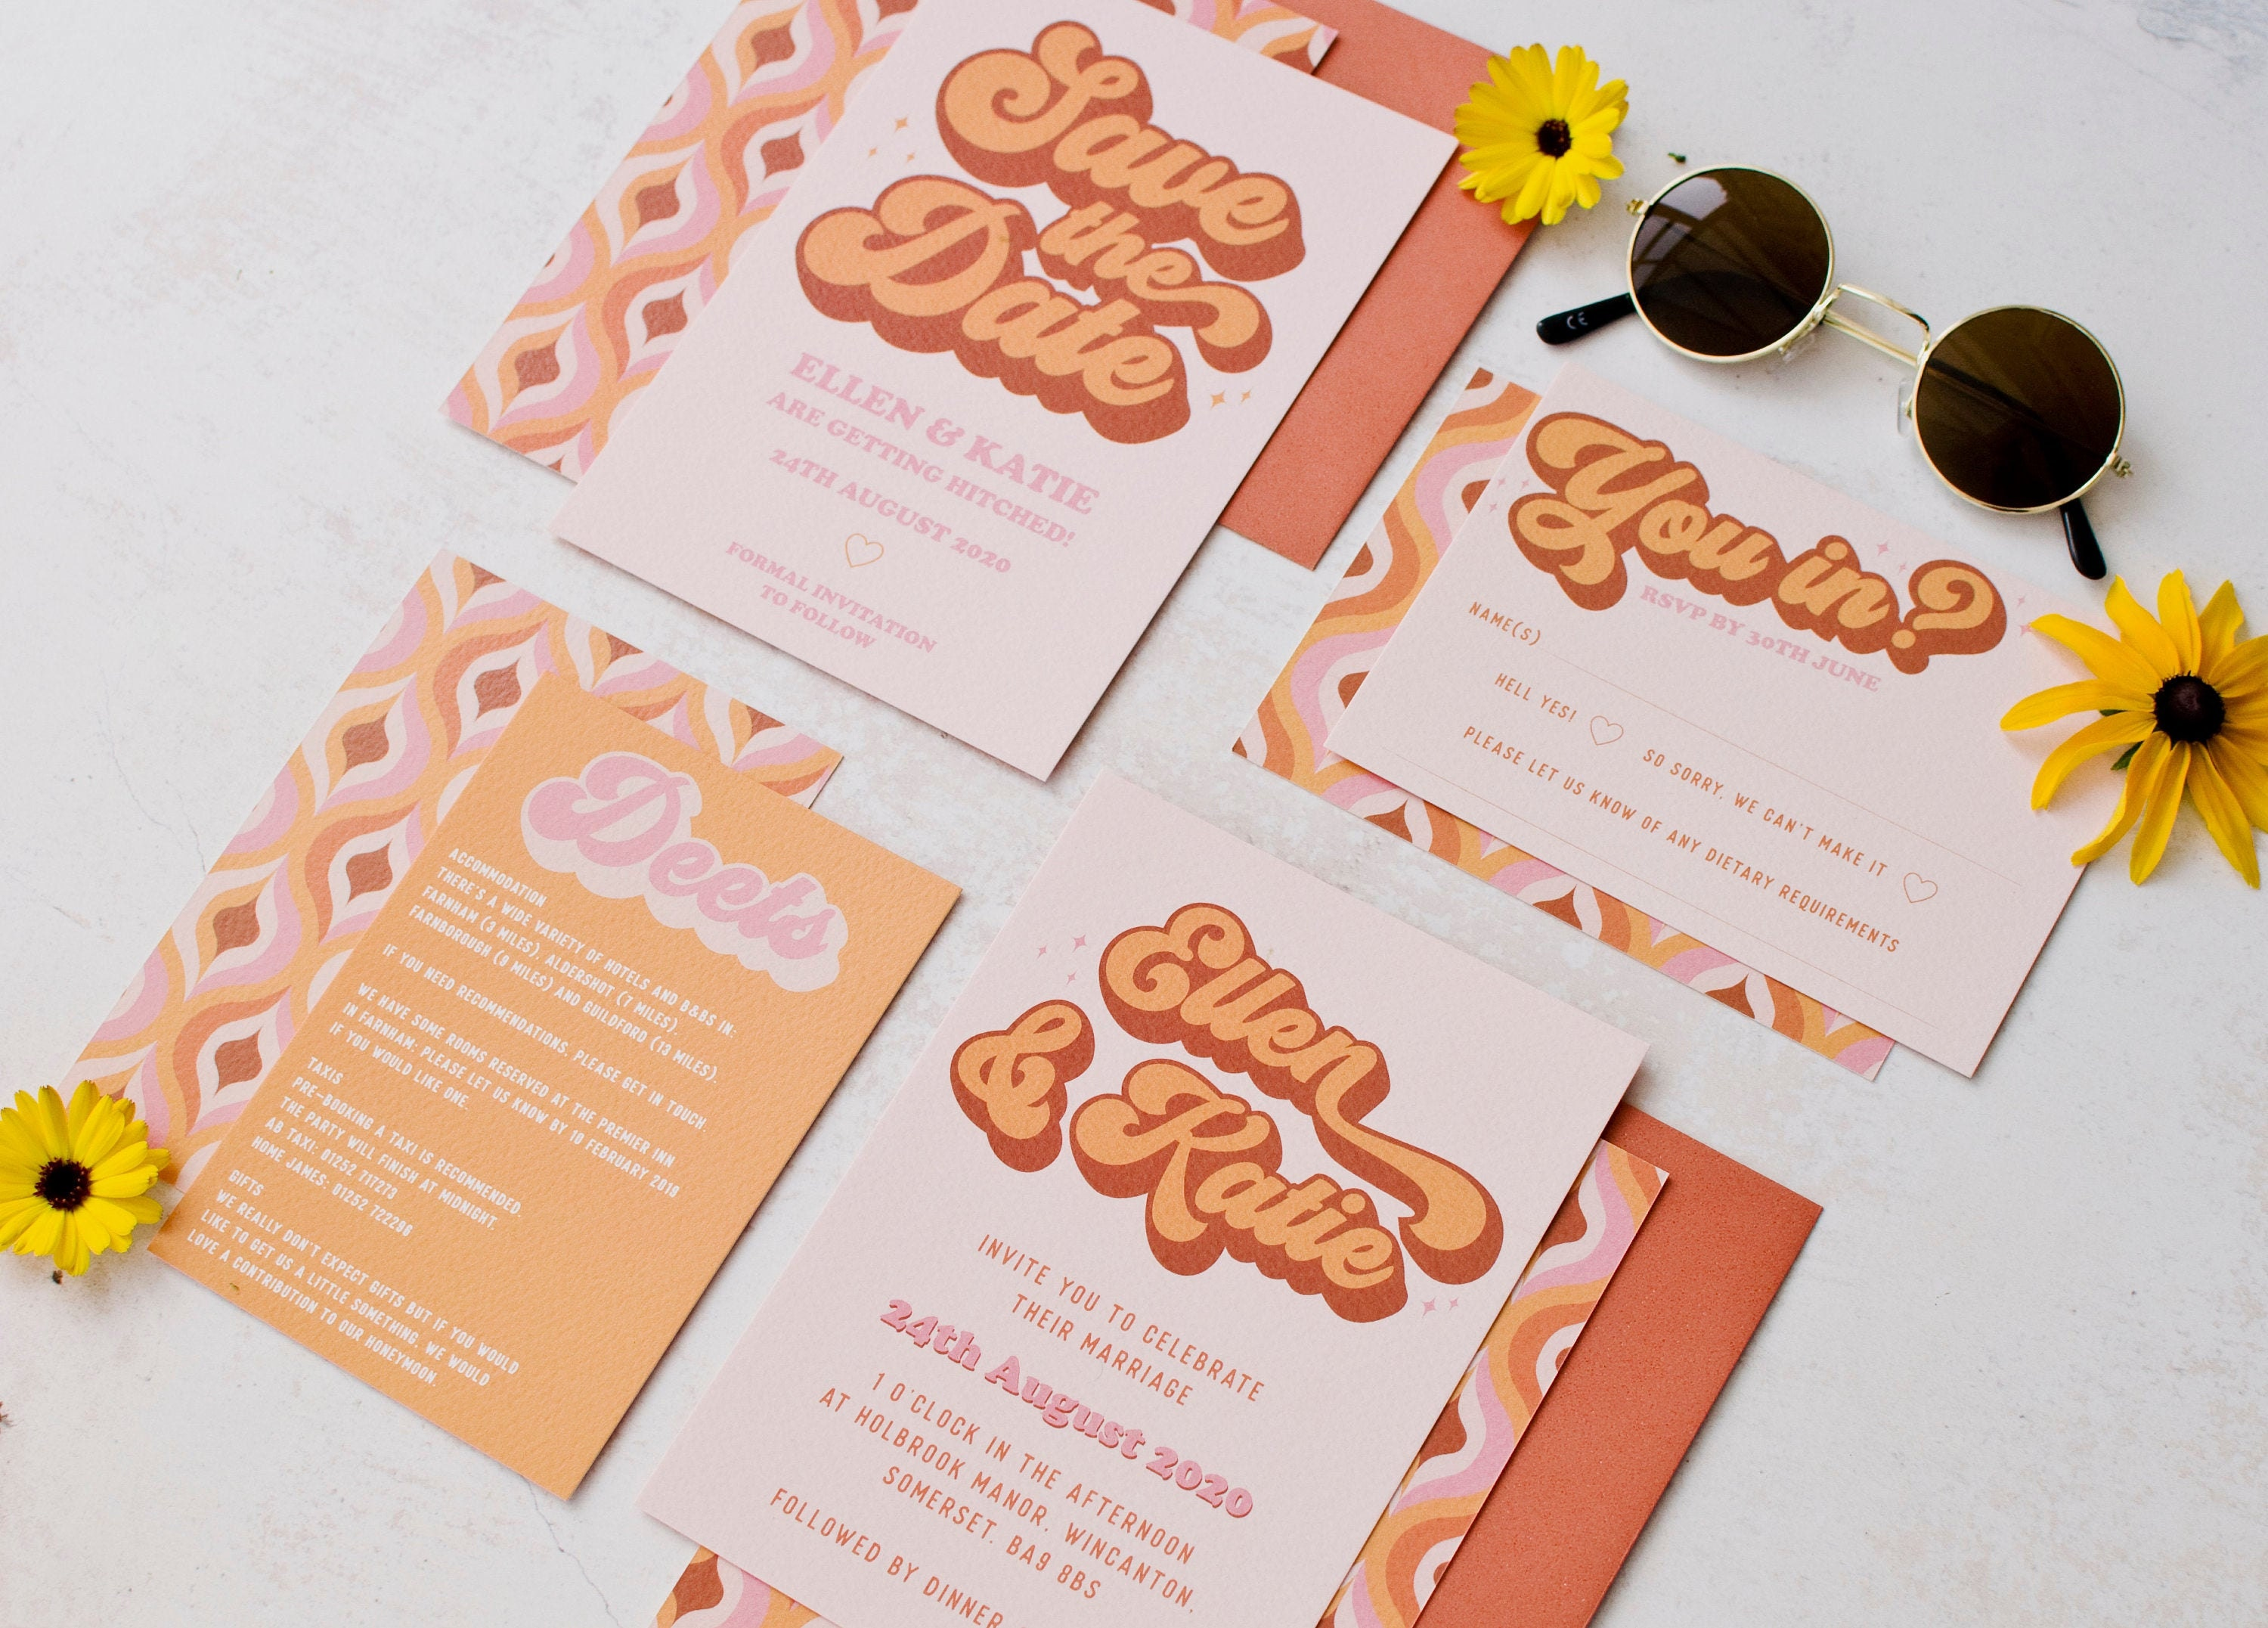 The Top 2020 Wedding Trends Sellers Need to Know